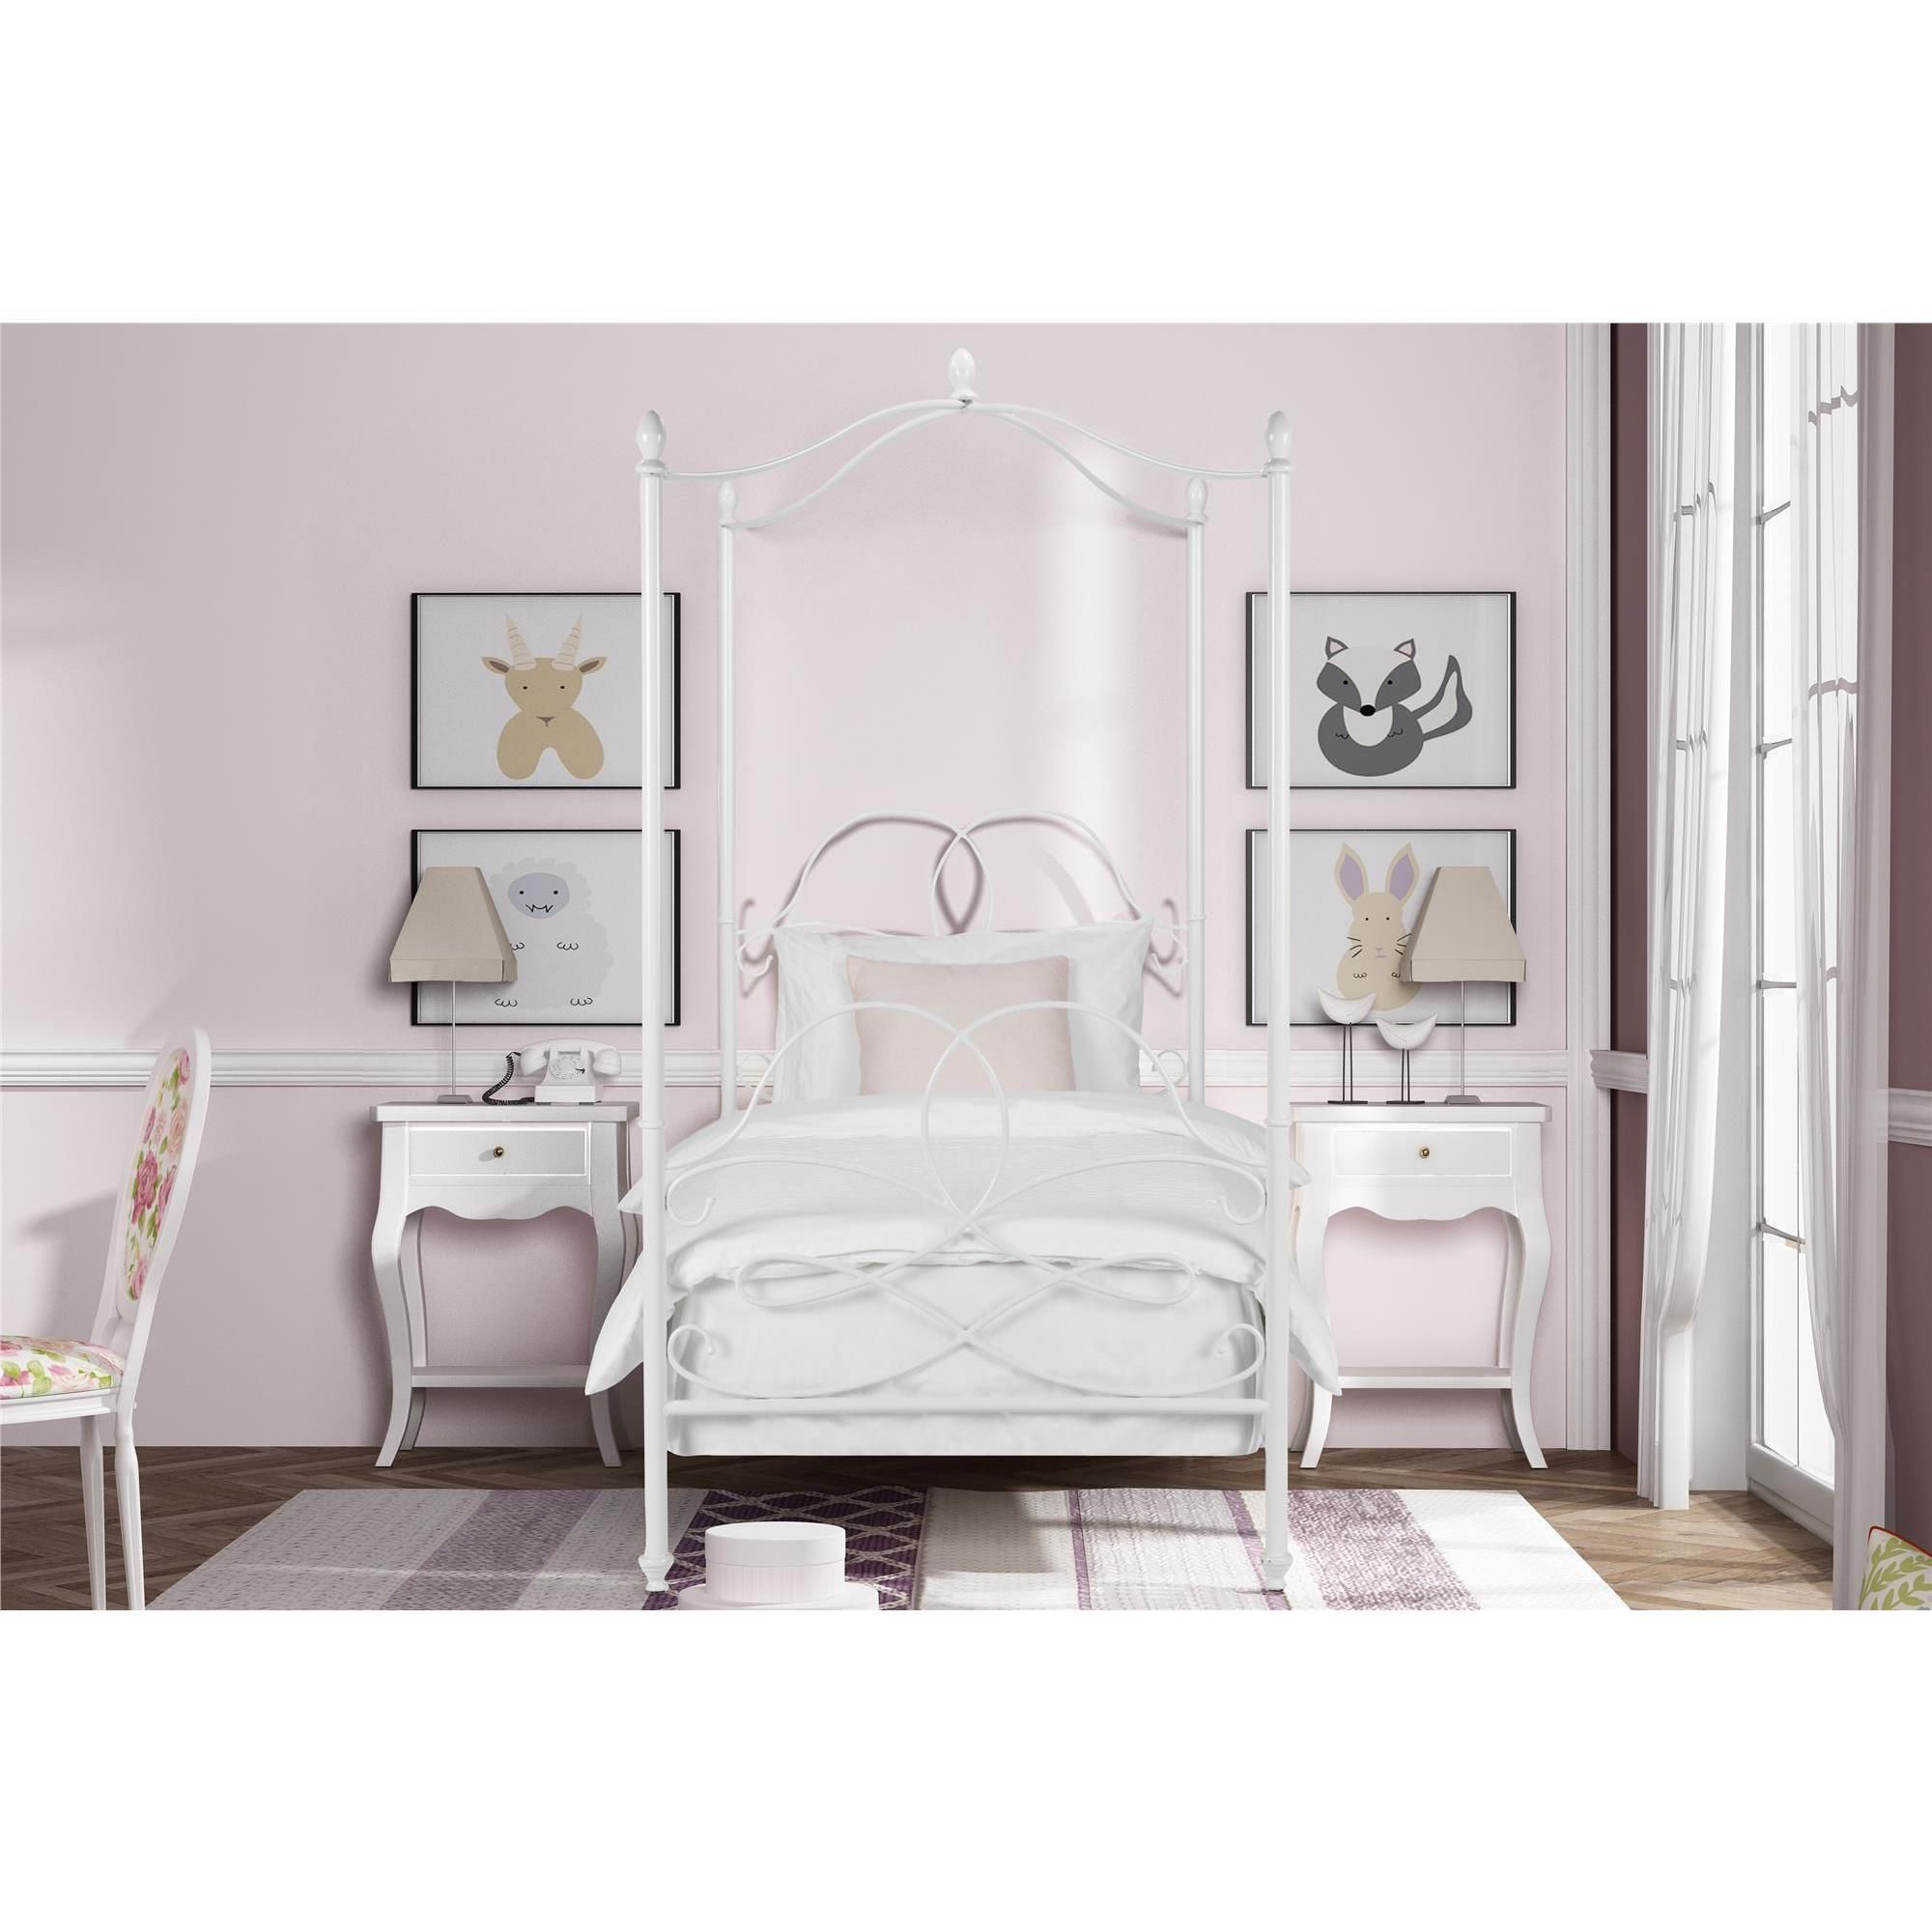 Avenue Greene Fancy White Metal Canopy Twin Bed (Twin canopy bed white)  sc 1 st  Pinterest : white metal canopy bed - memphite.com